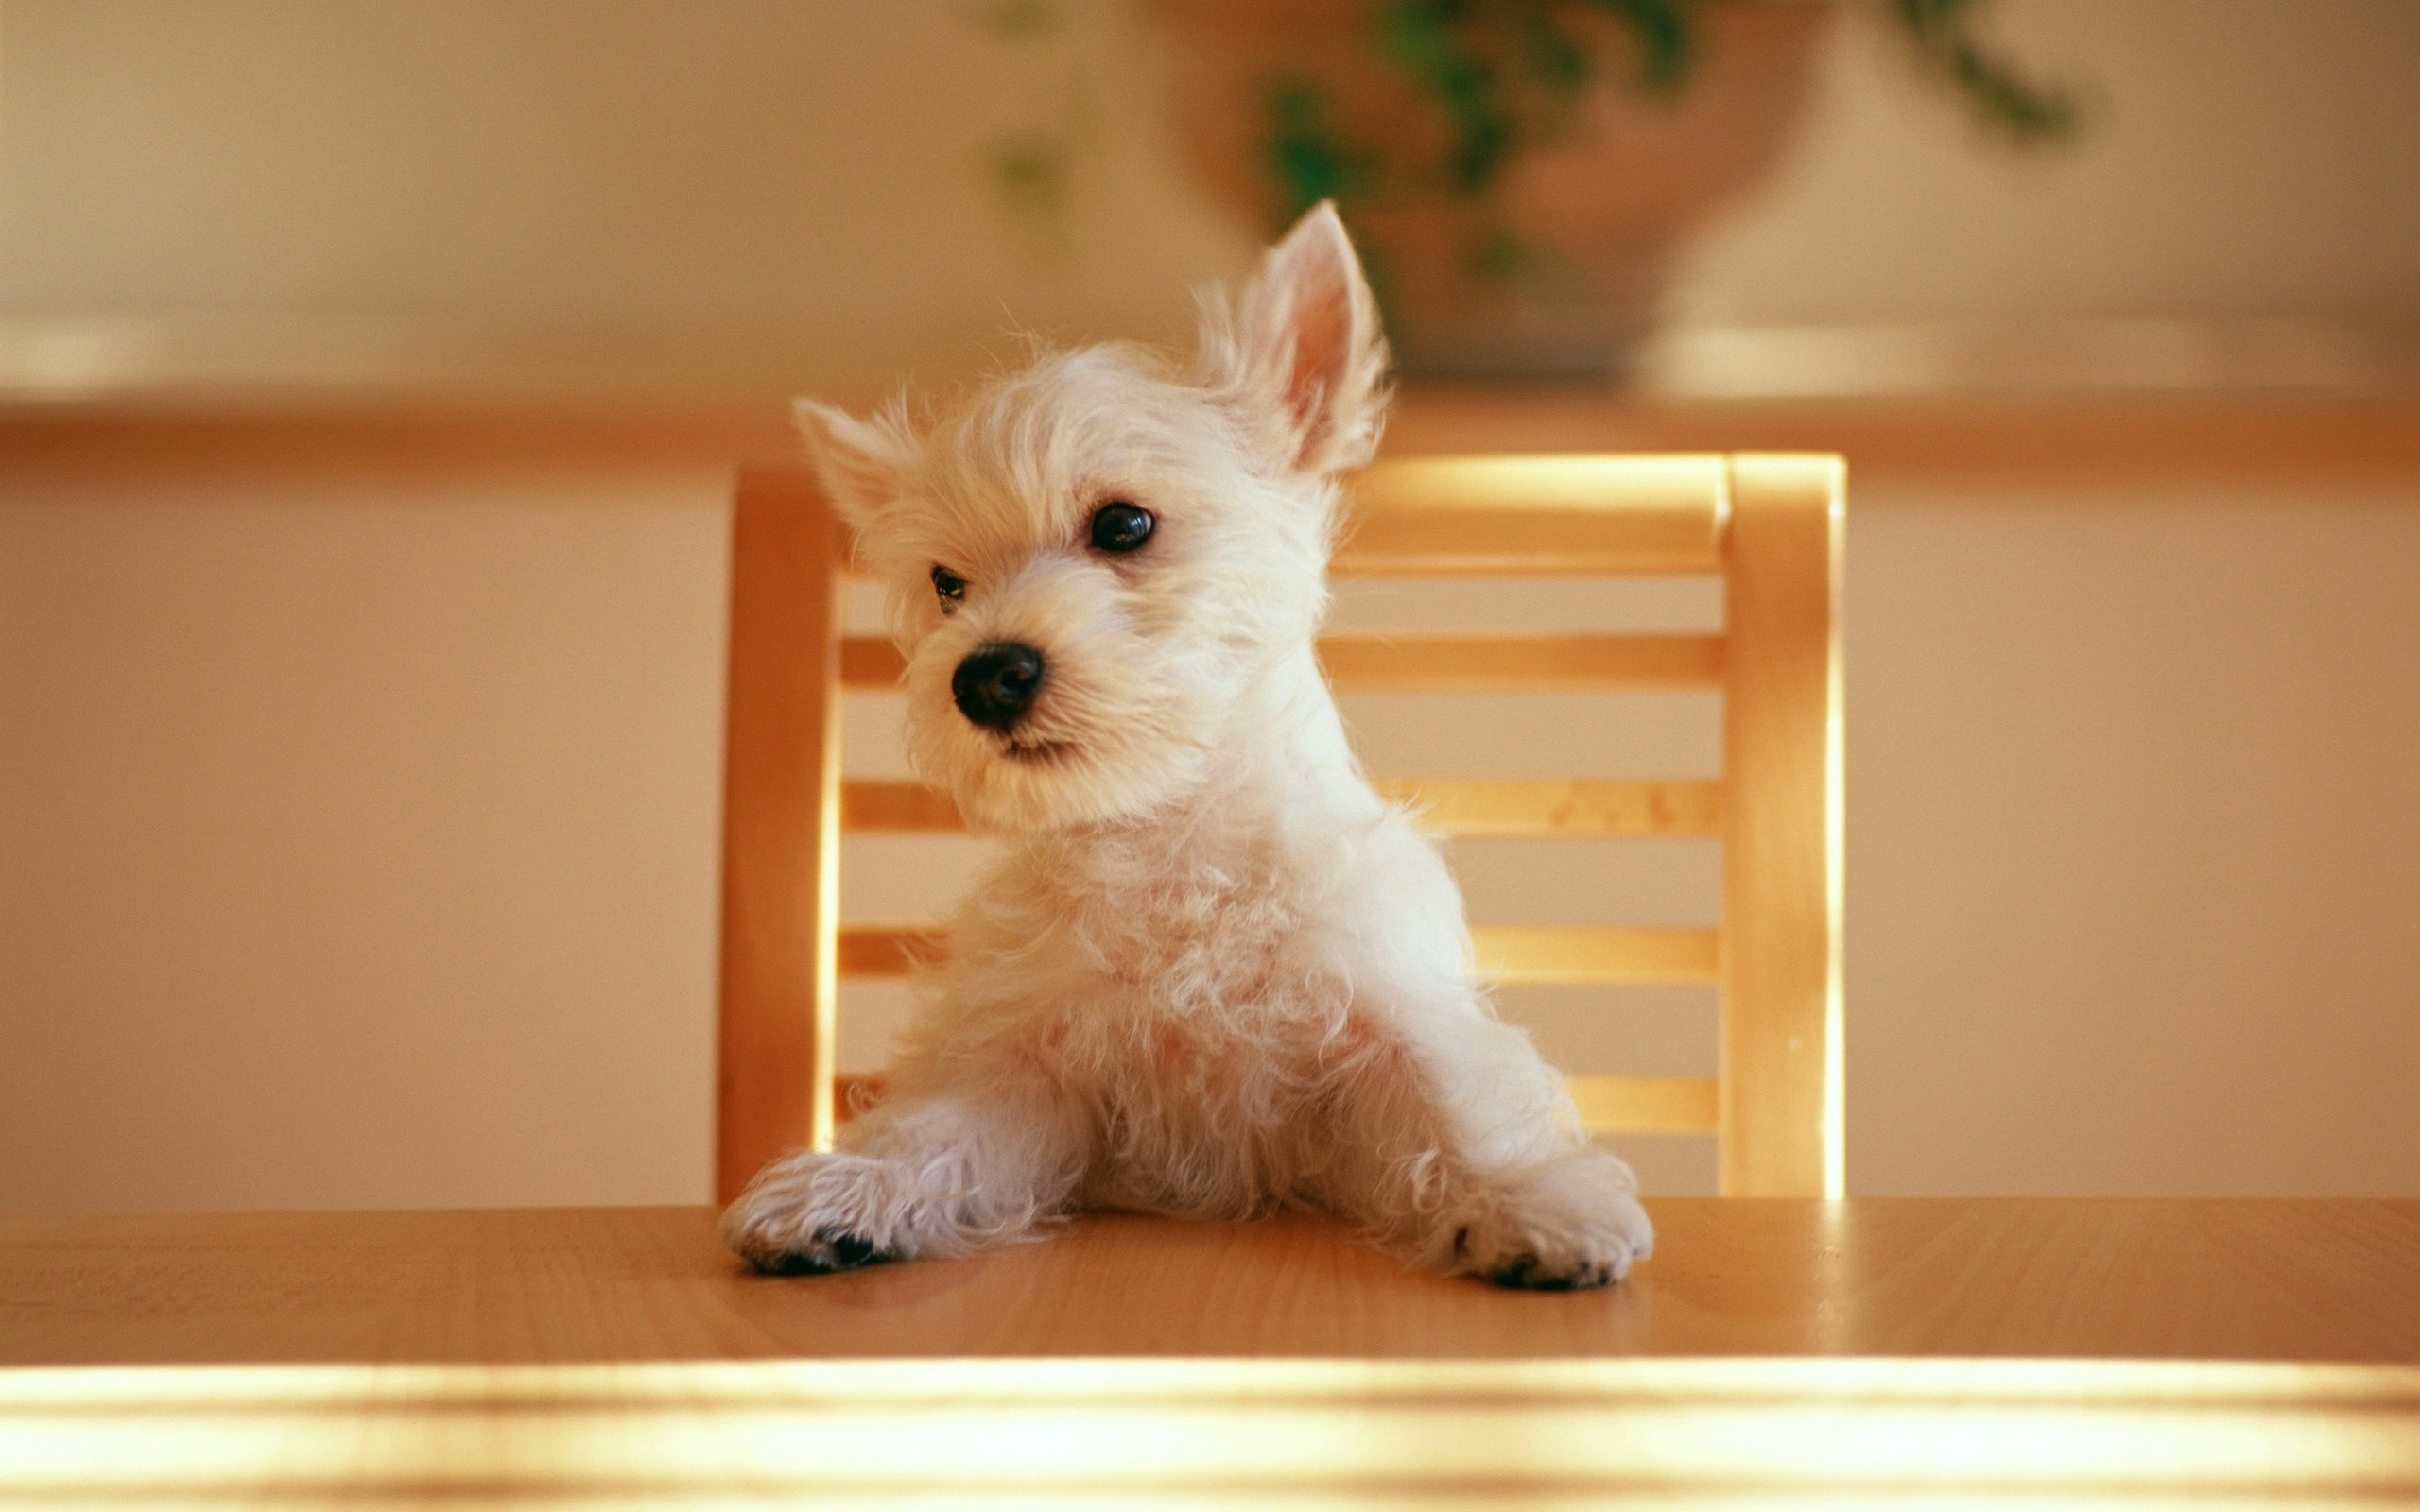 _dog-at-the-table-animals-in-nature-free-wallpaper